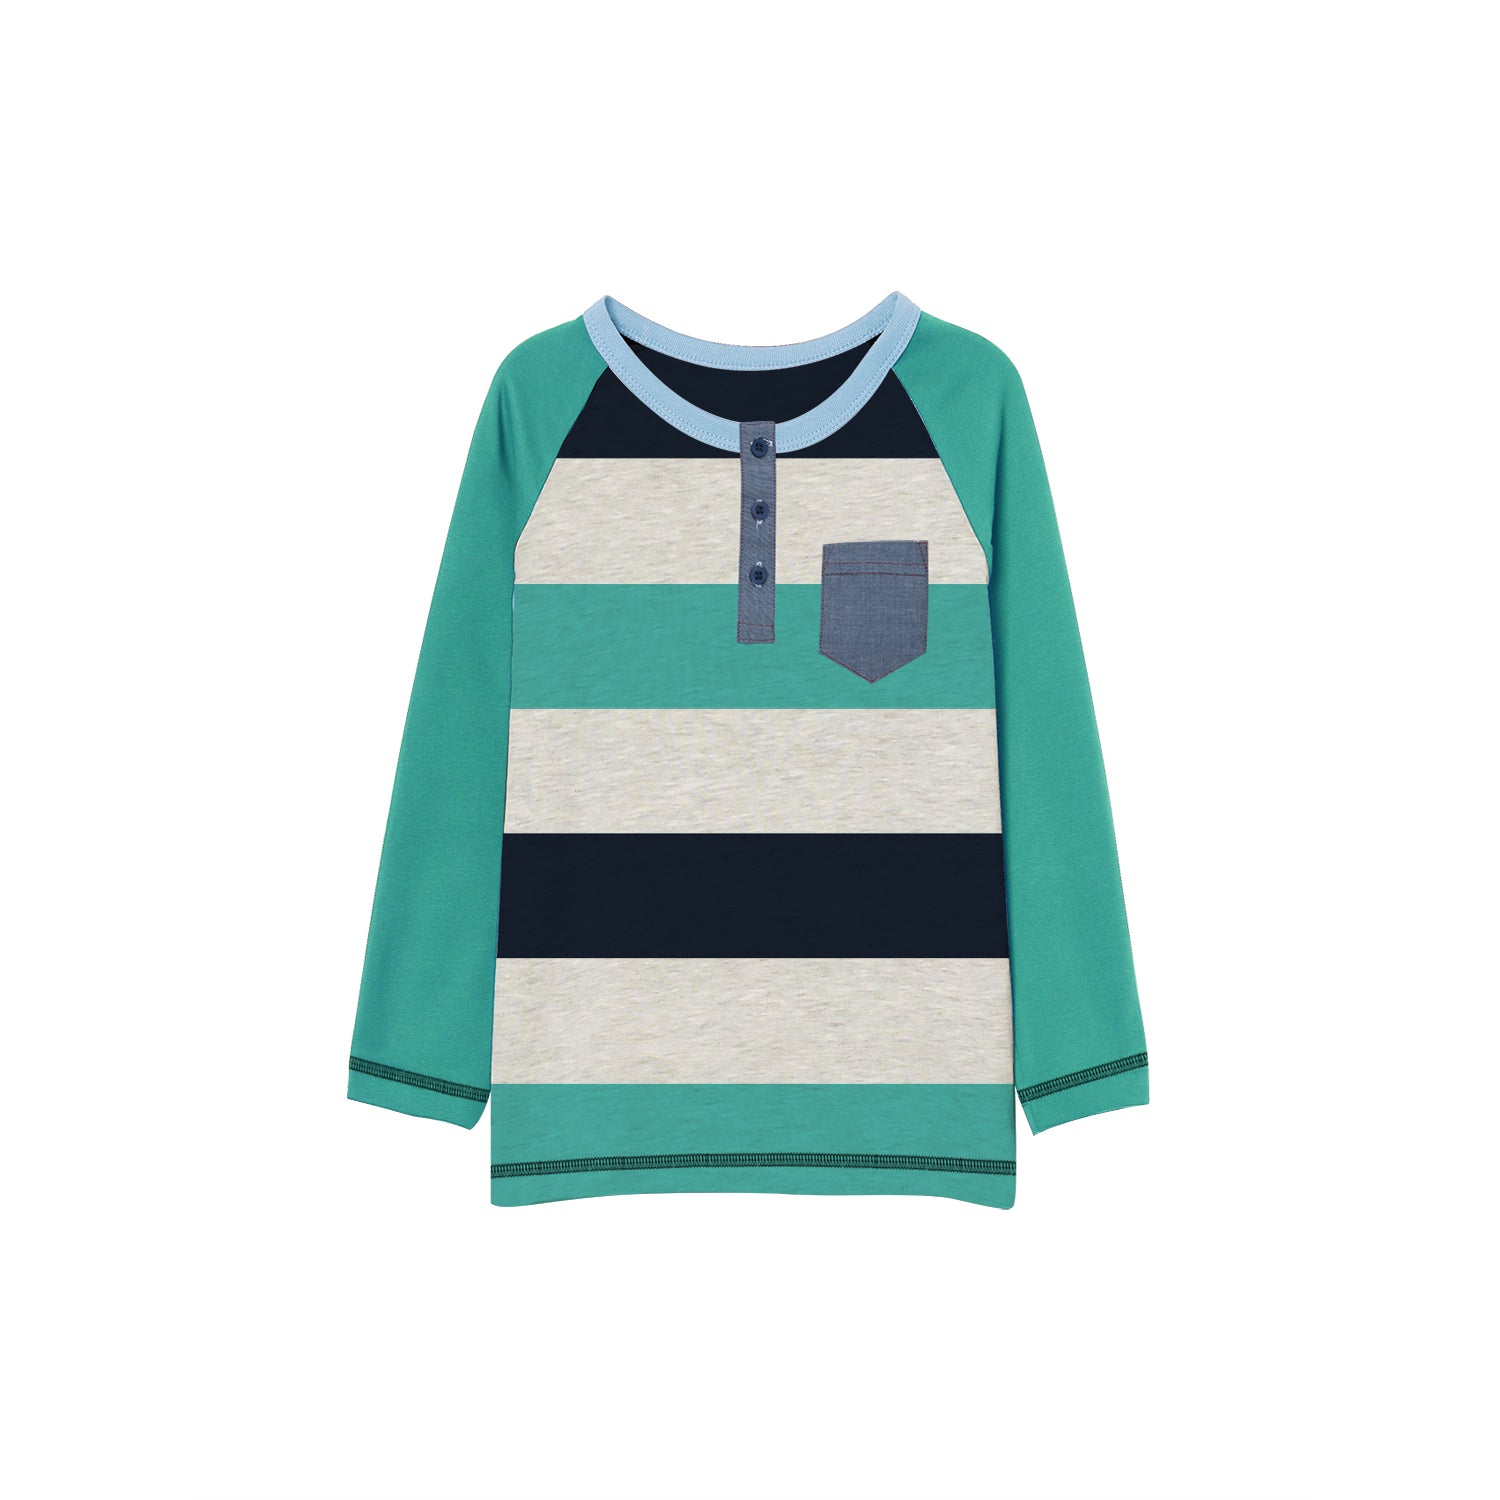 NEXT Single Jersey Henley Long Sleeve Shirt For Kids-Striped-BE9361